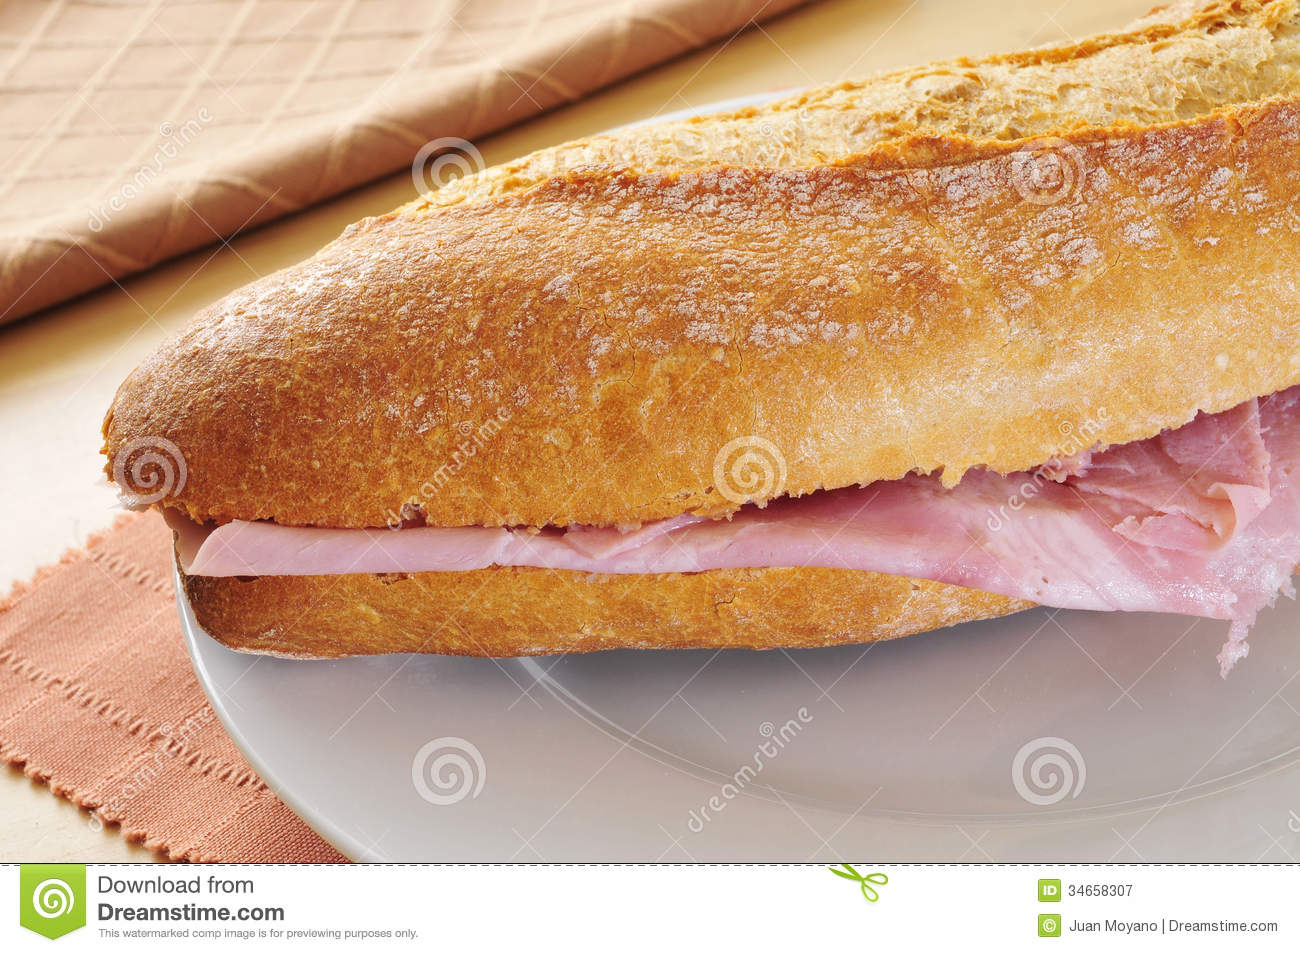 How to make a ham sandwich, in Spanish! - YouTube